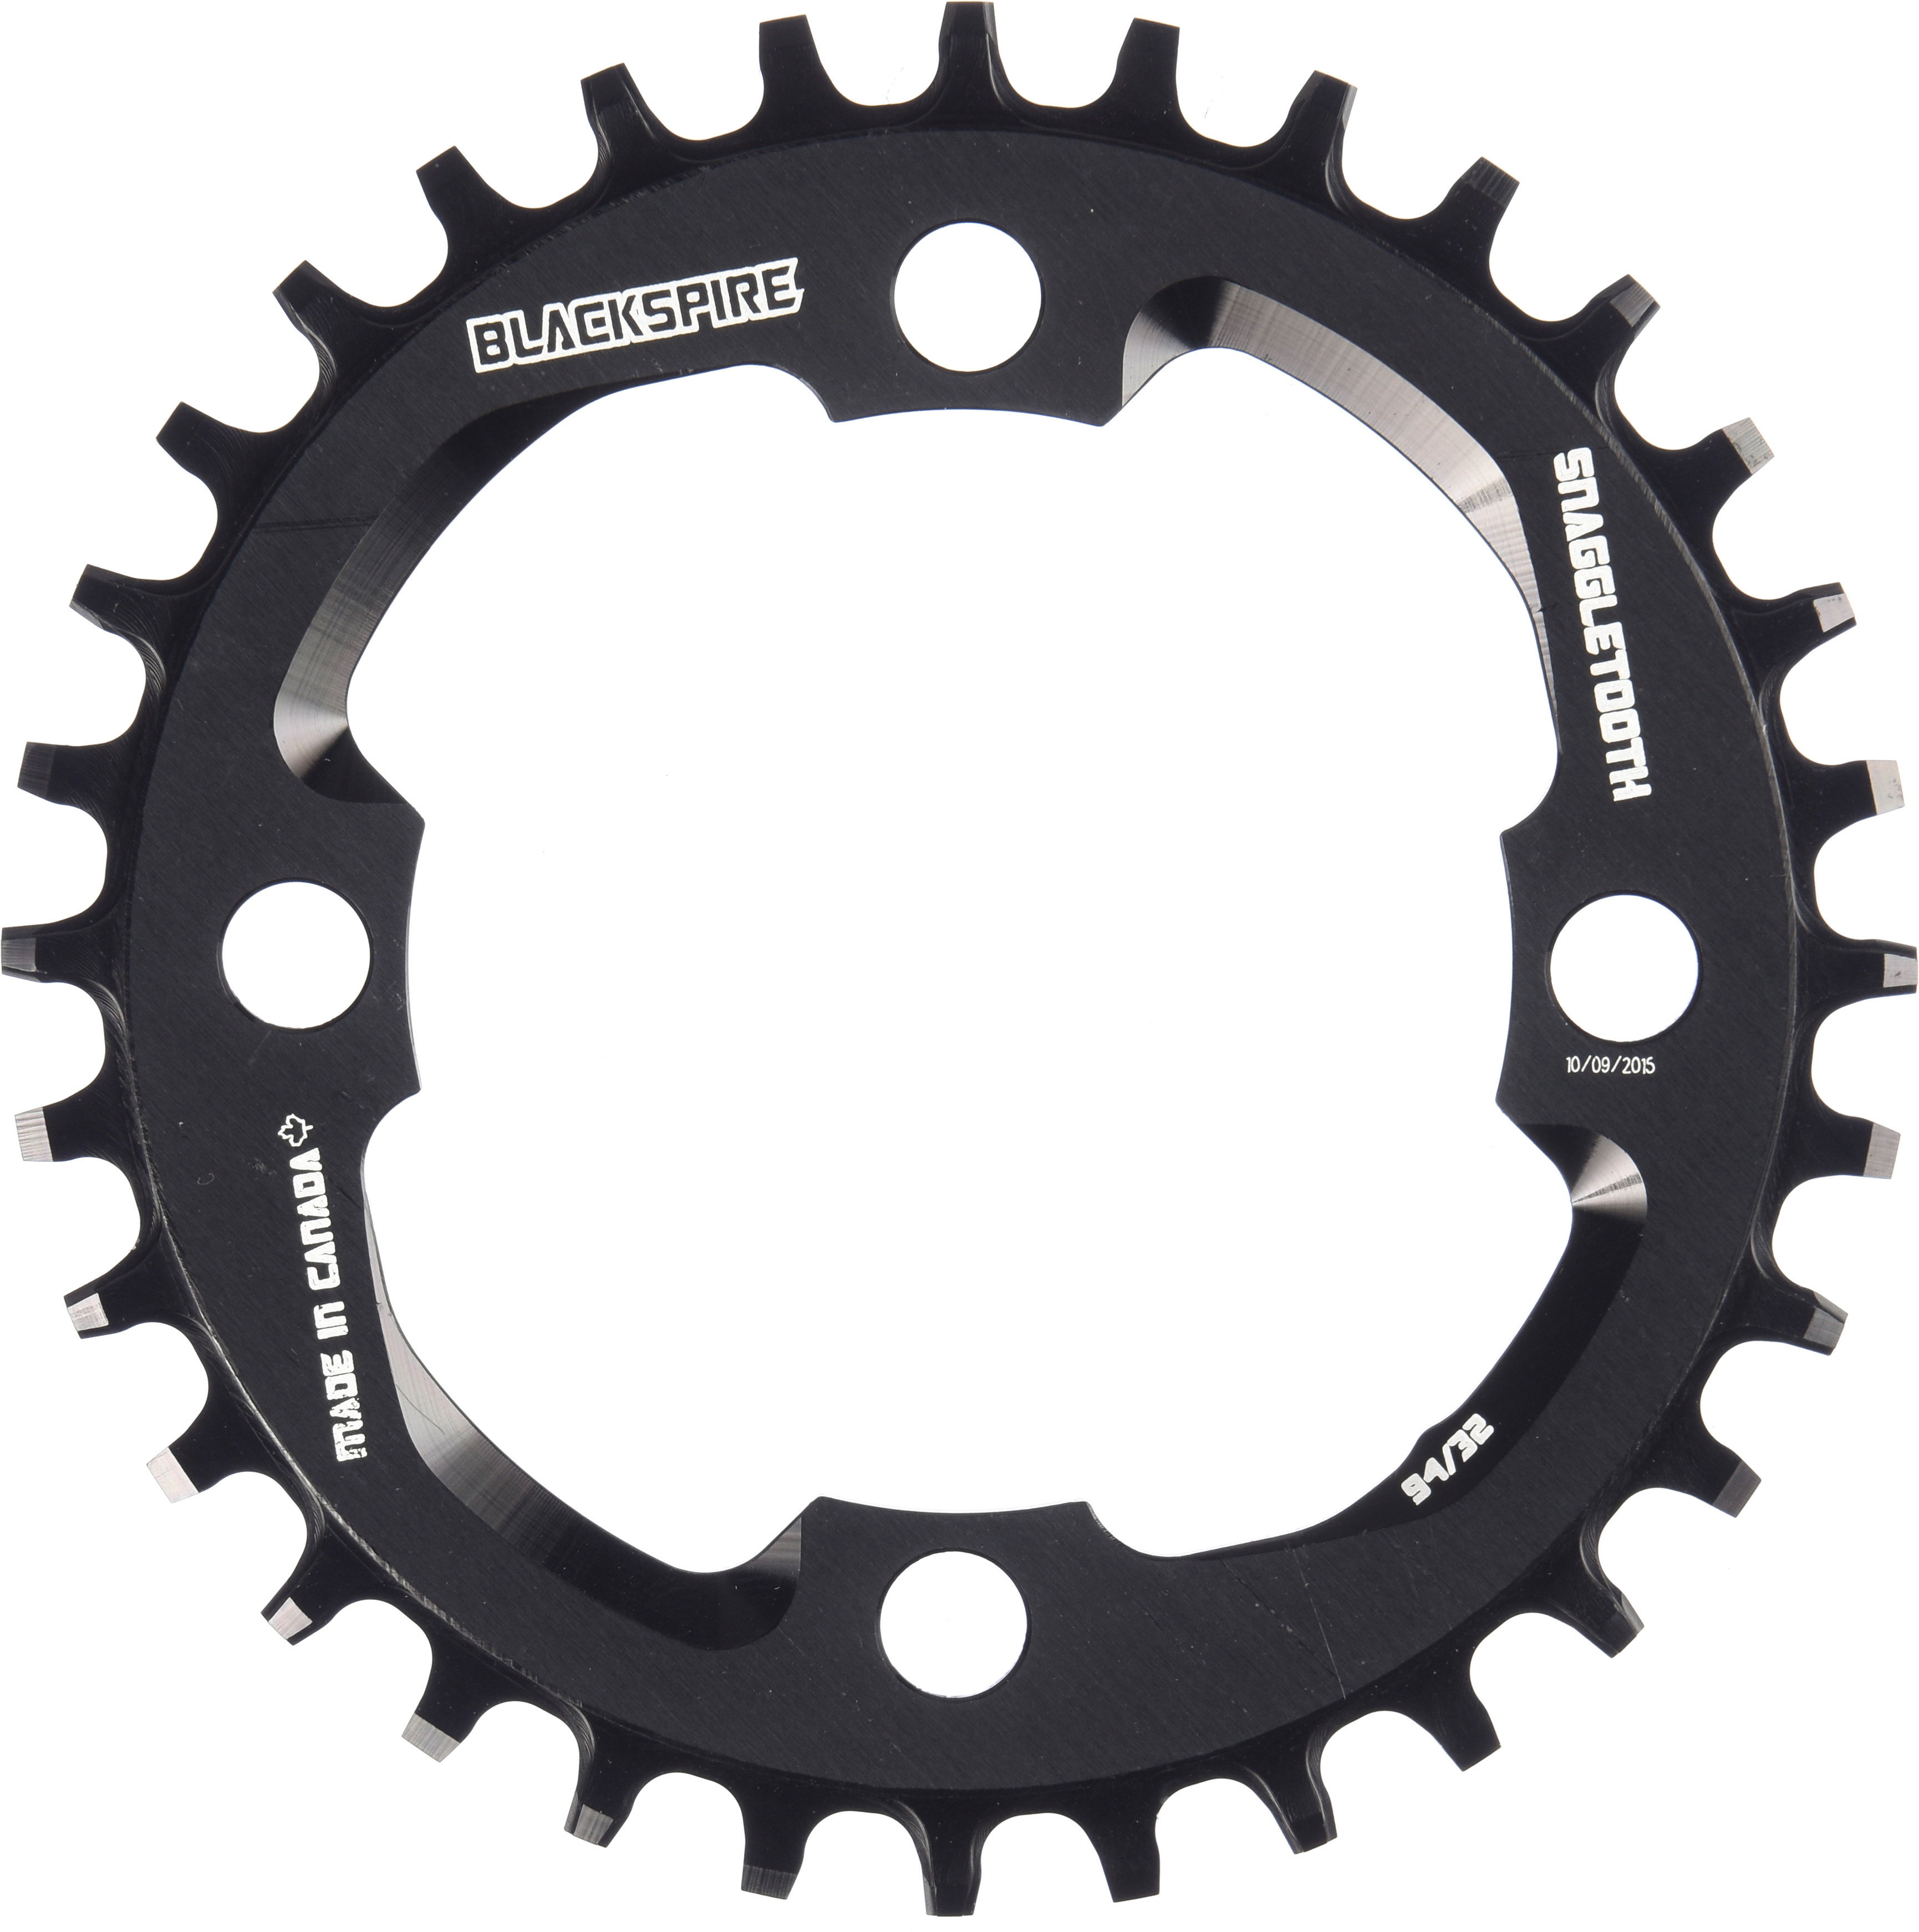 Blackspire Snaggletooth Narrow Wide Chainring X01 | chainrings_component